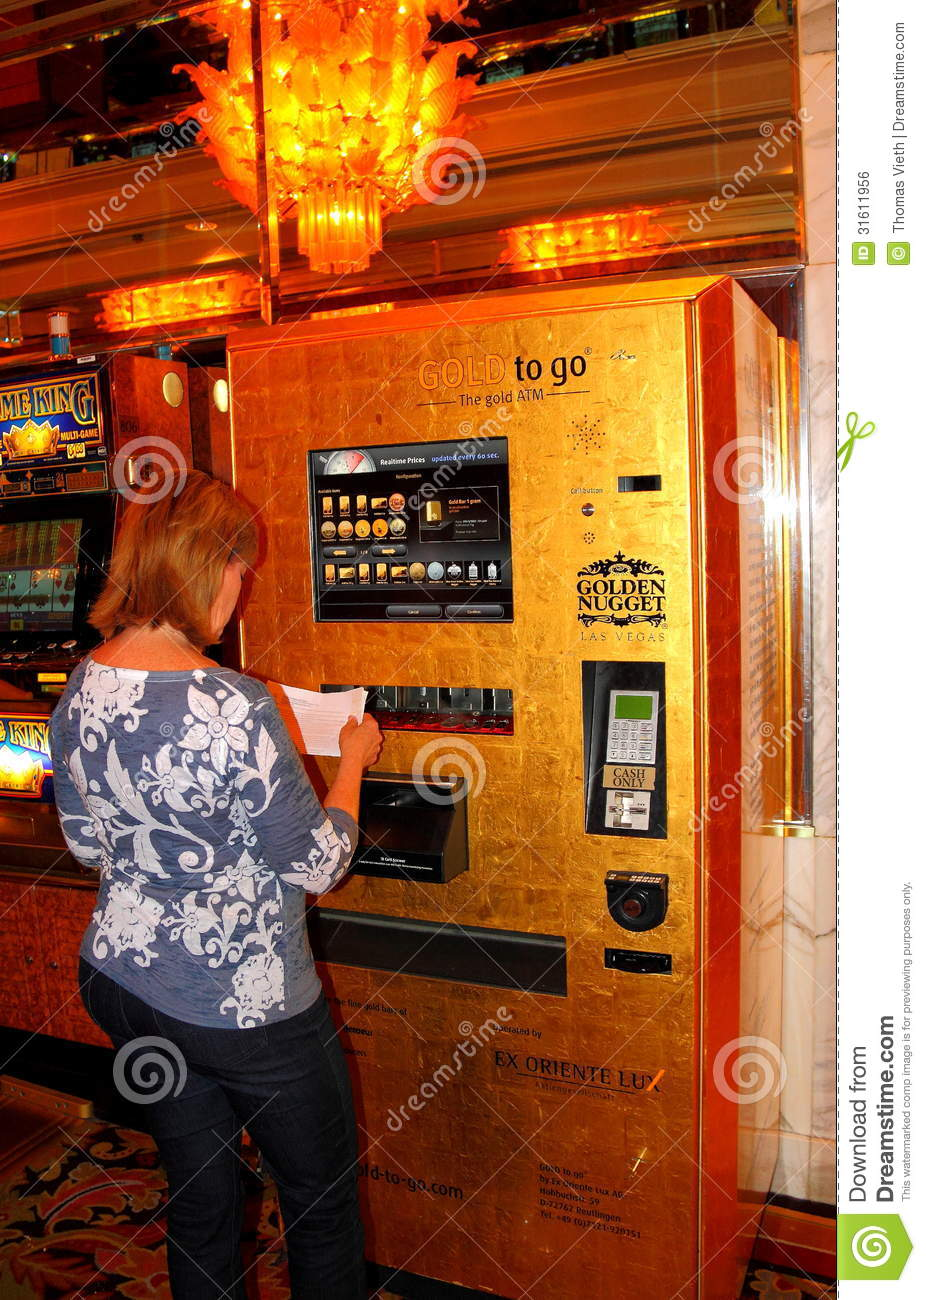 golden nugget casino gold vending machine